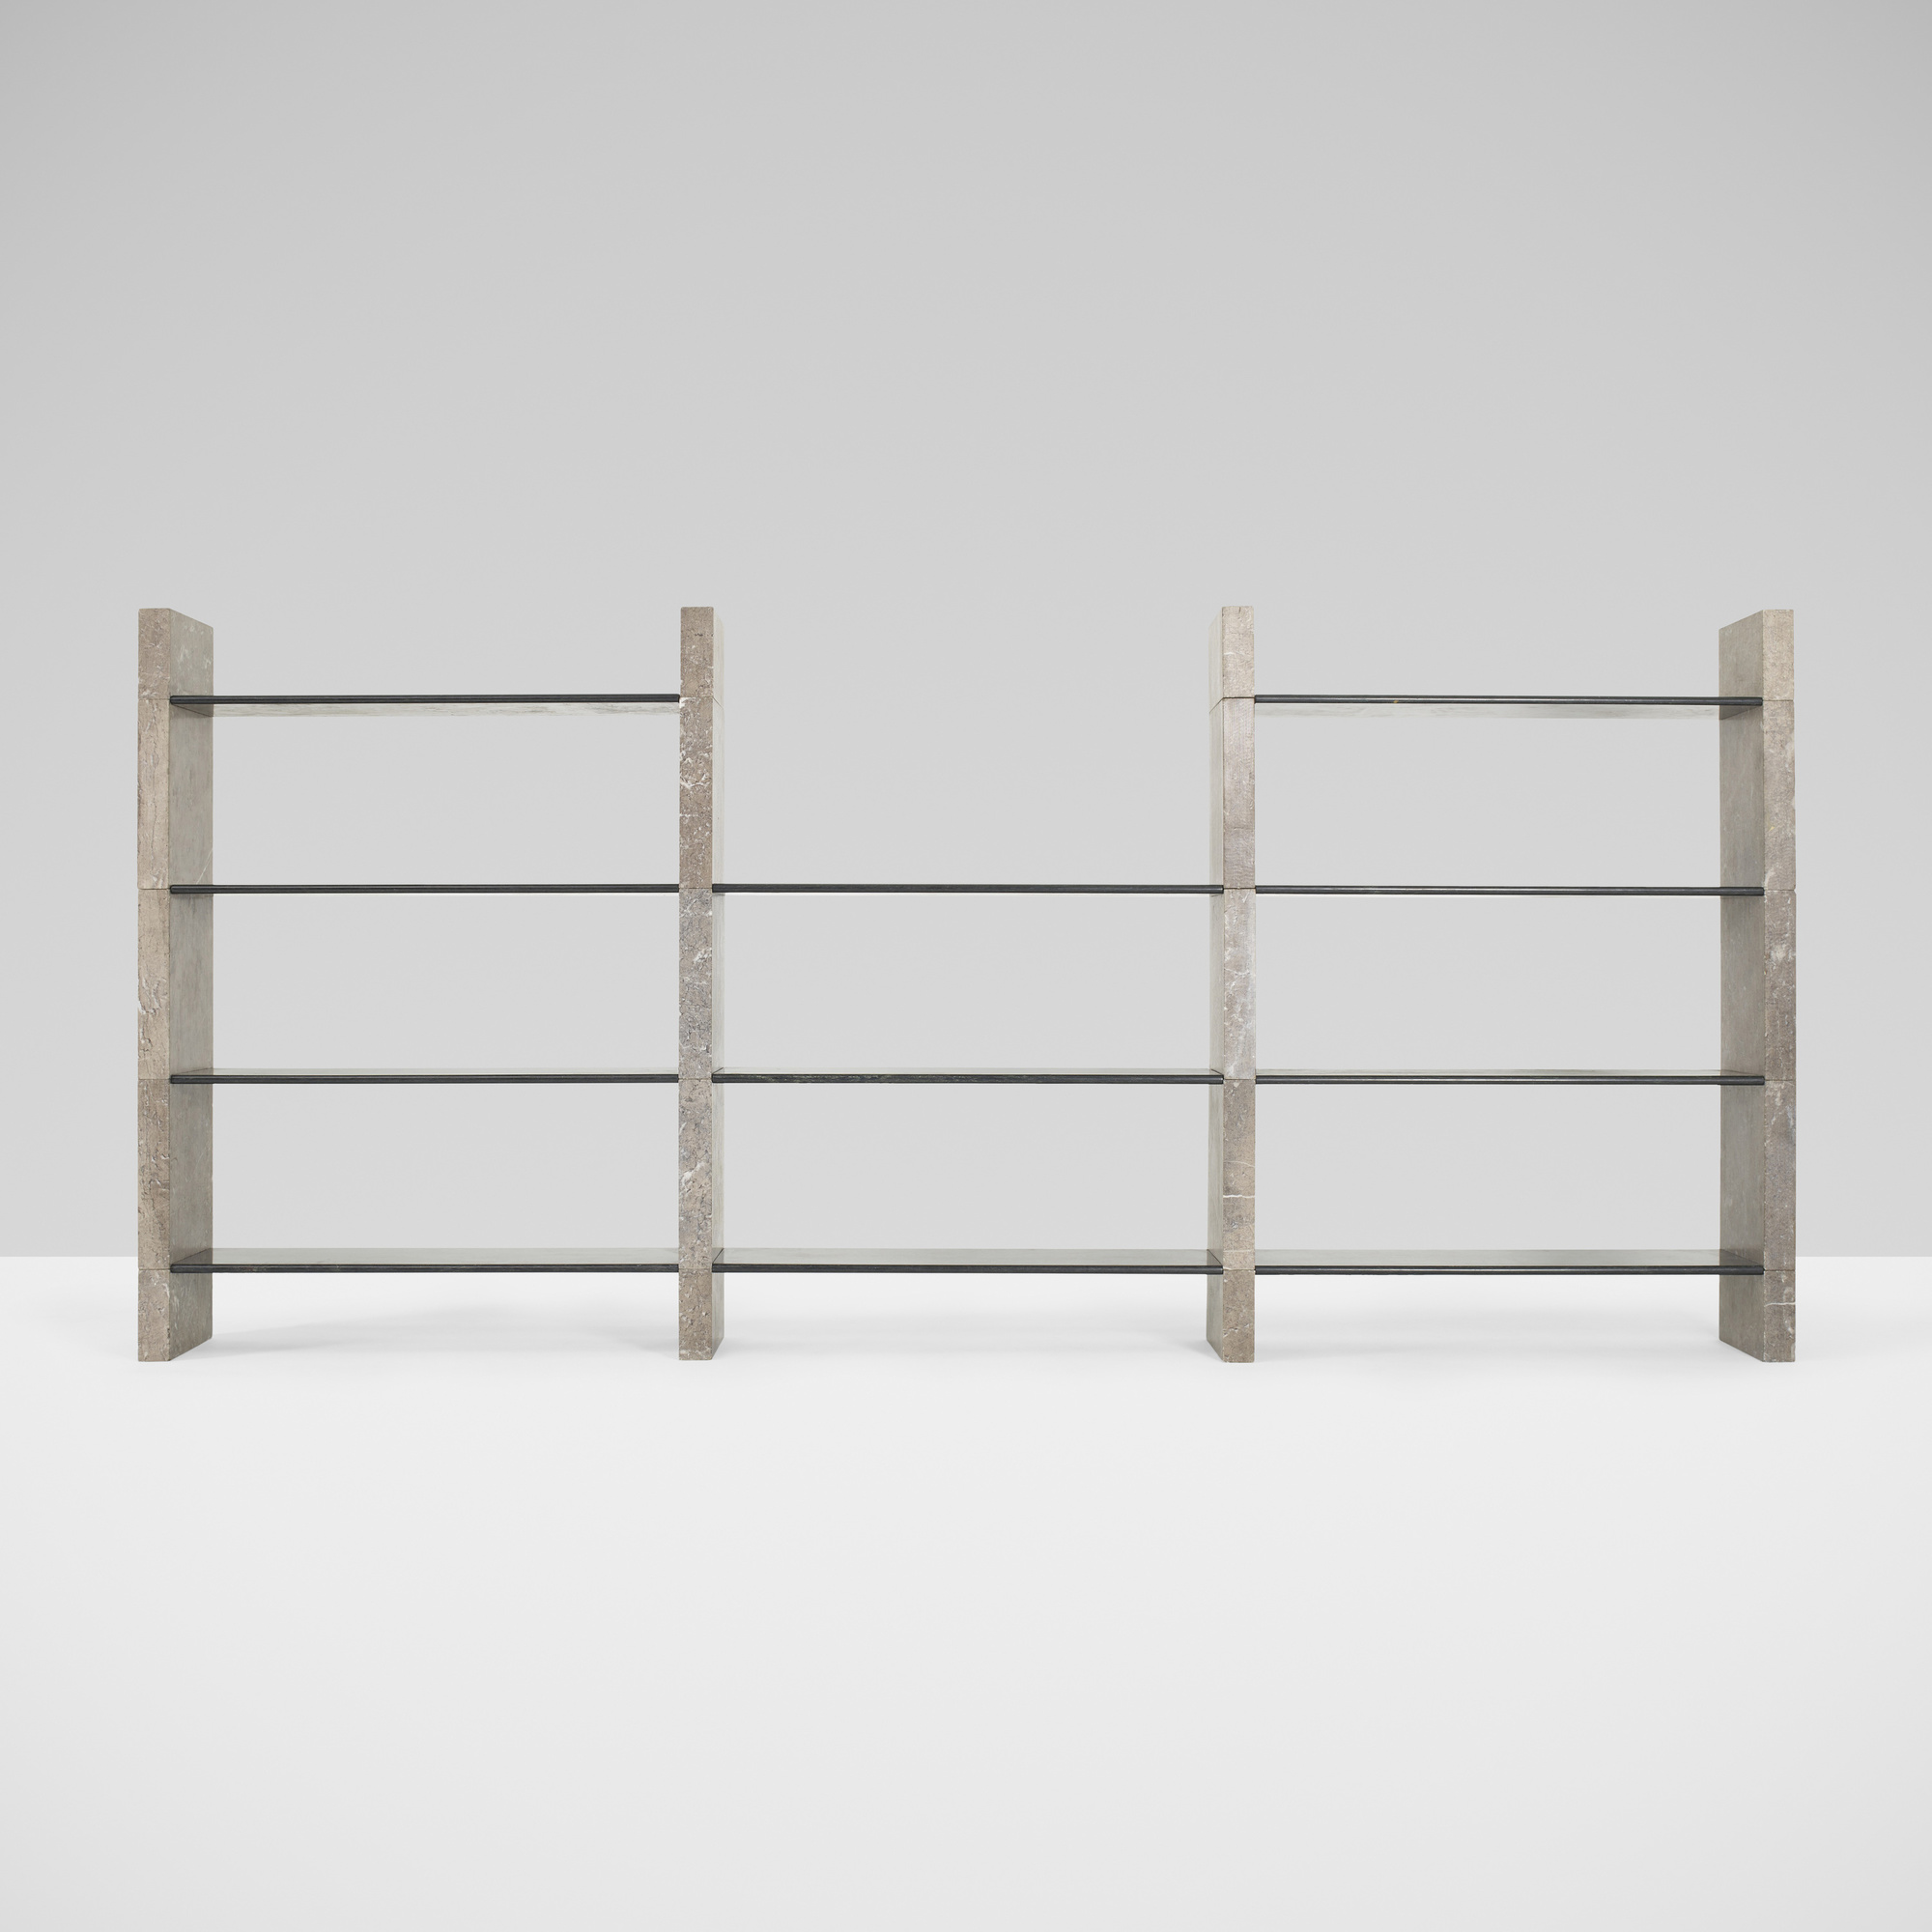 249: Afra and Tobia Scarpa / Cisonio bookcase (2 of 3)